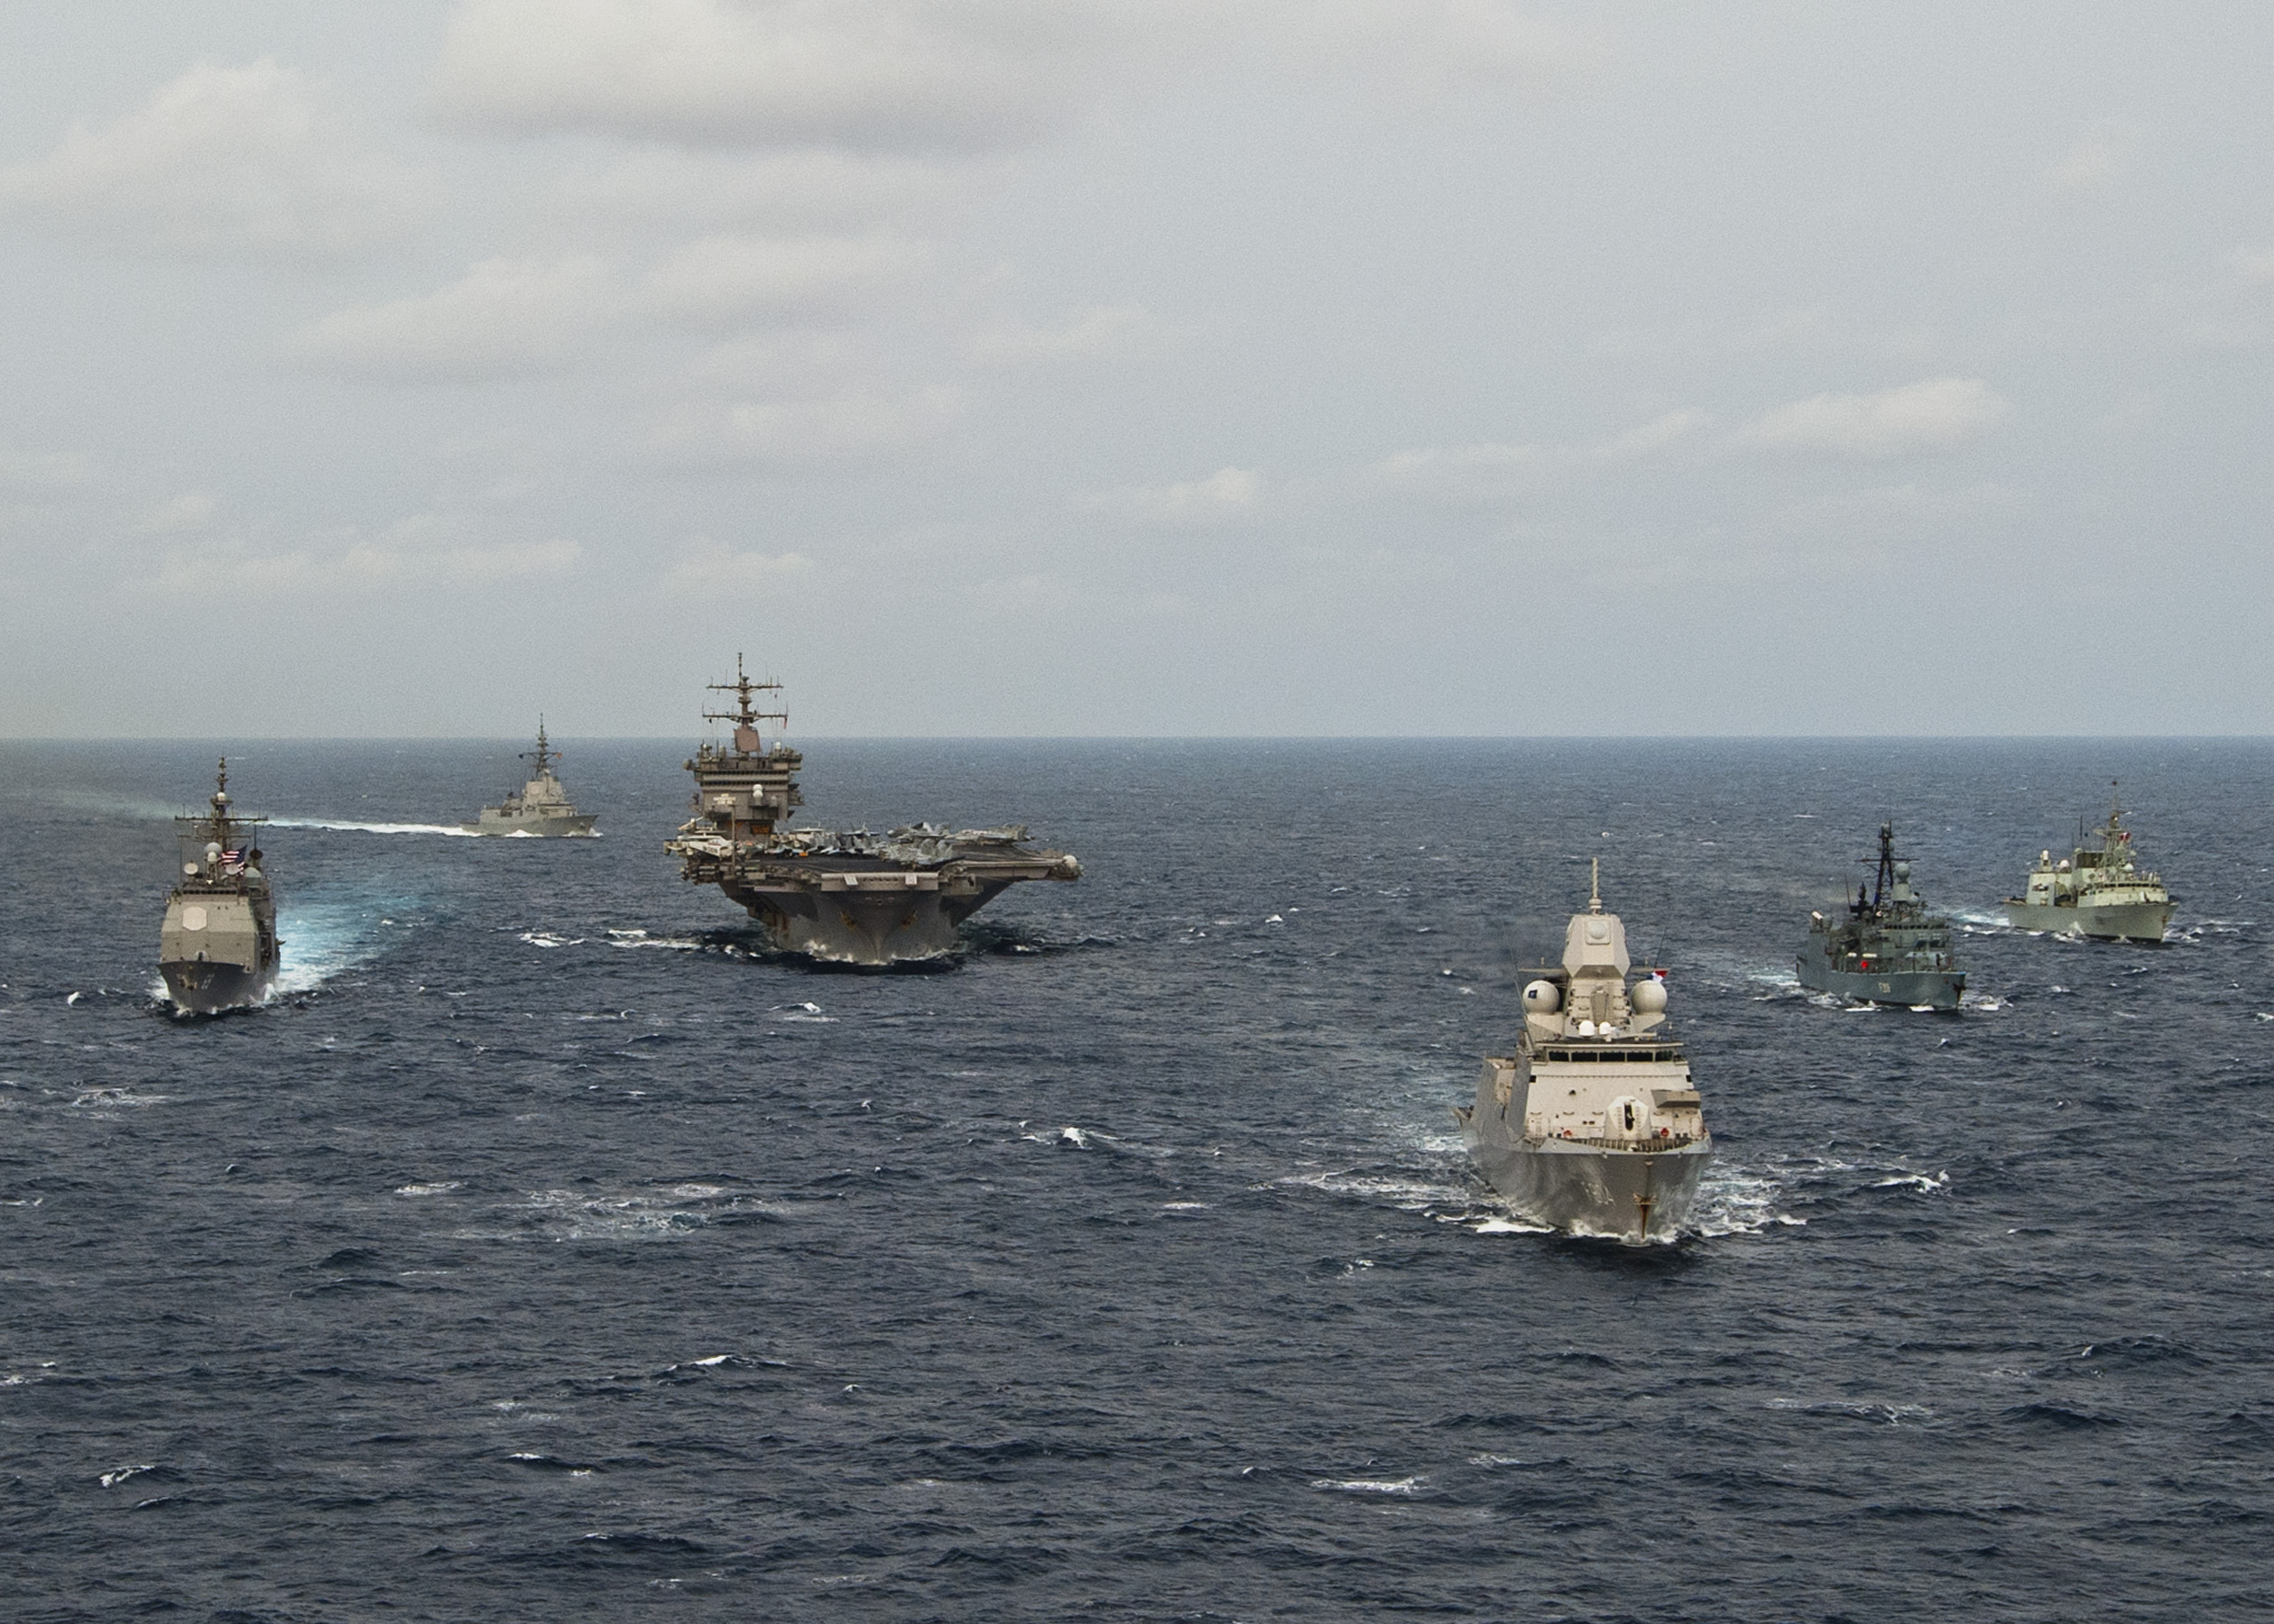 Carrier_Strike_Group_12_-_Standing_NATO_Maritime_Group_1_PASSEX_March_2012.jpg